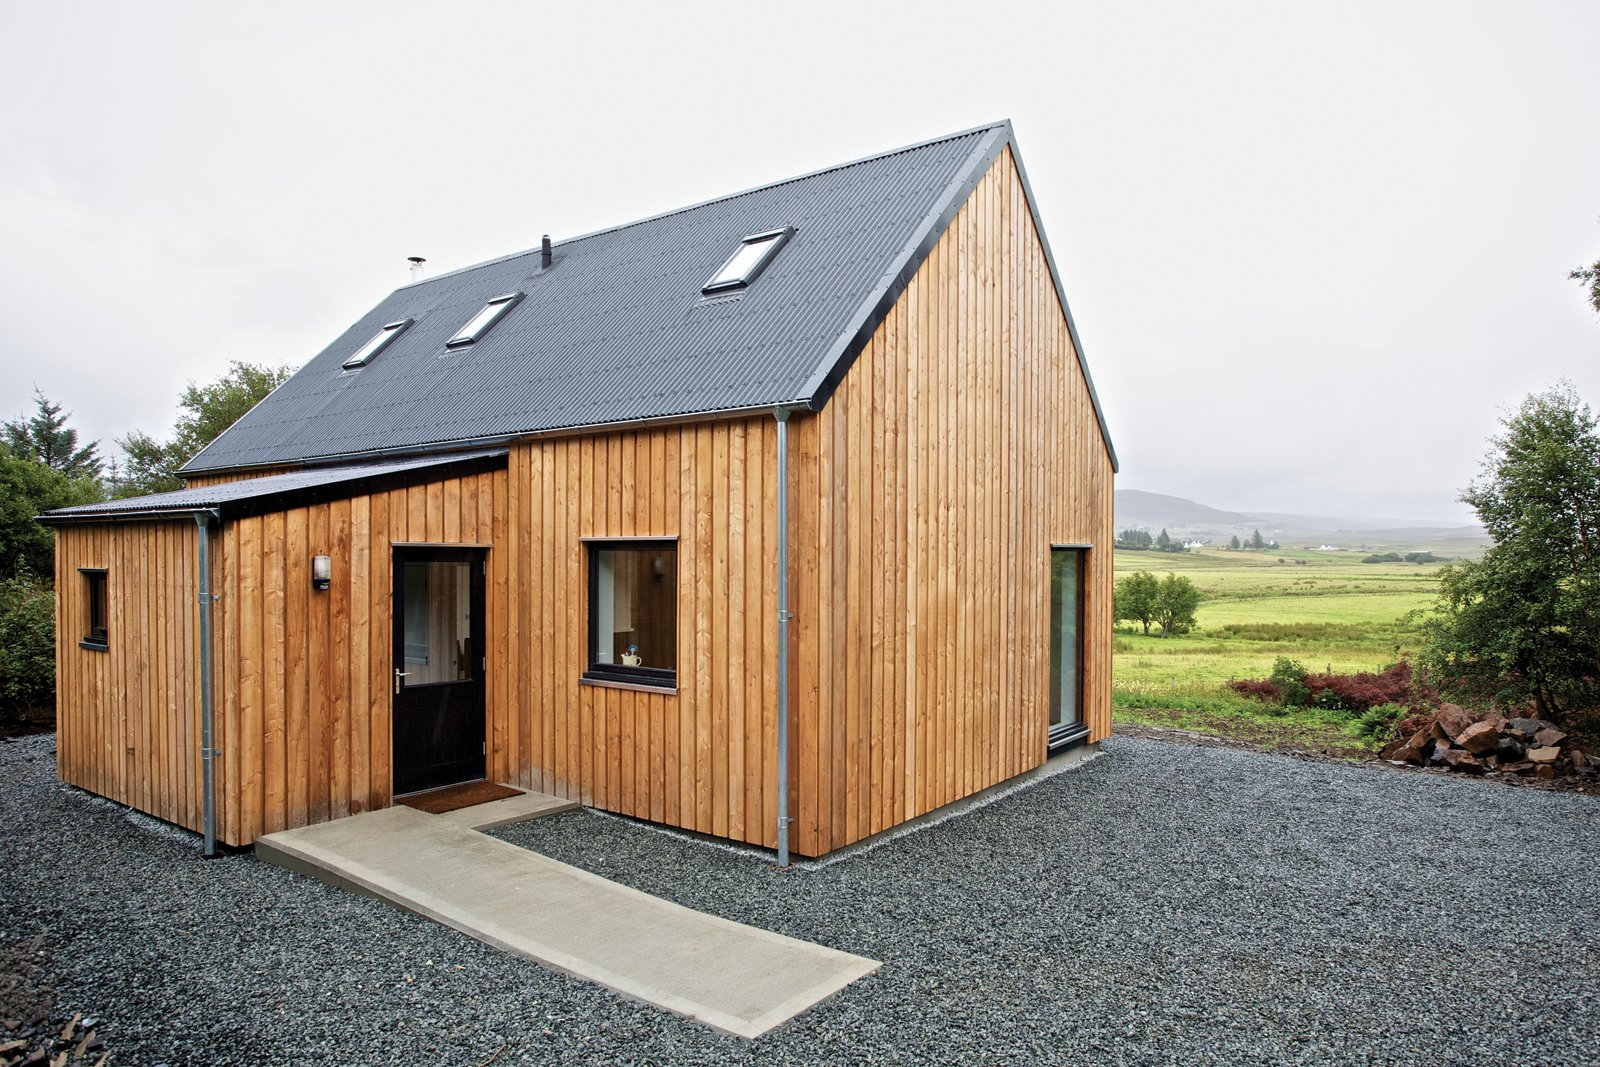 "This ""local prefab"" home on the Isle of Skye is made mostly from materials sourced in northern Scotland. The timber-framed model, meant to evoke the simple agrarian barns of the area, can be constructed on-site in as little as a day and is designed for affordability."